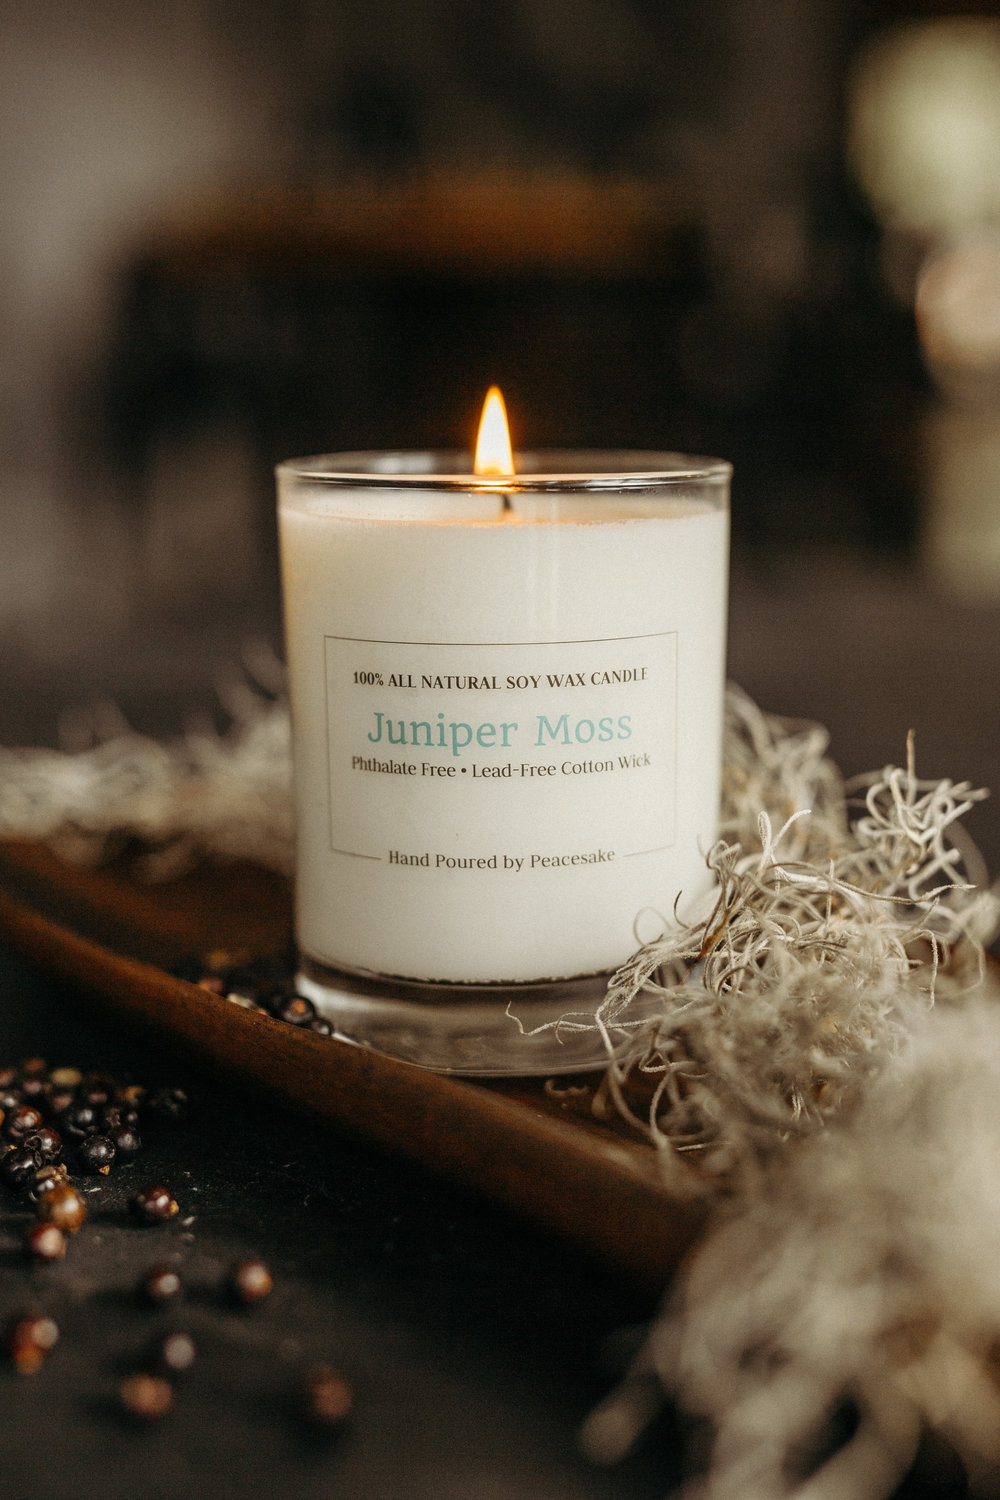 peacesake-phthalate-free-soy-wax-candle-juniper-moss-cotton-wick